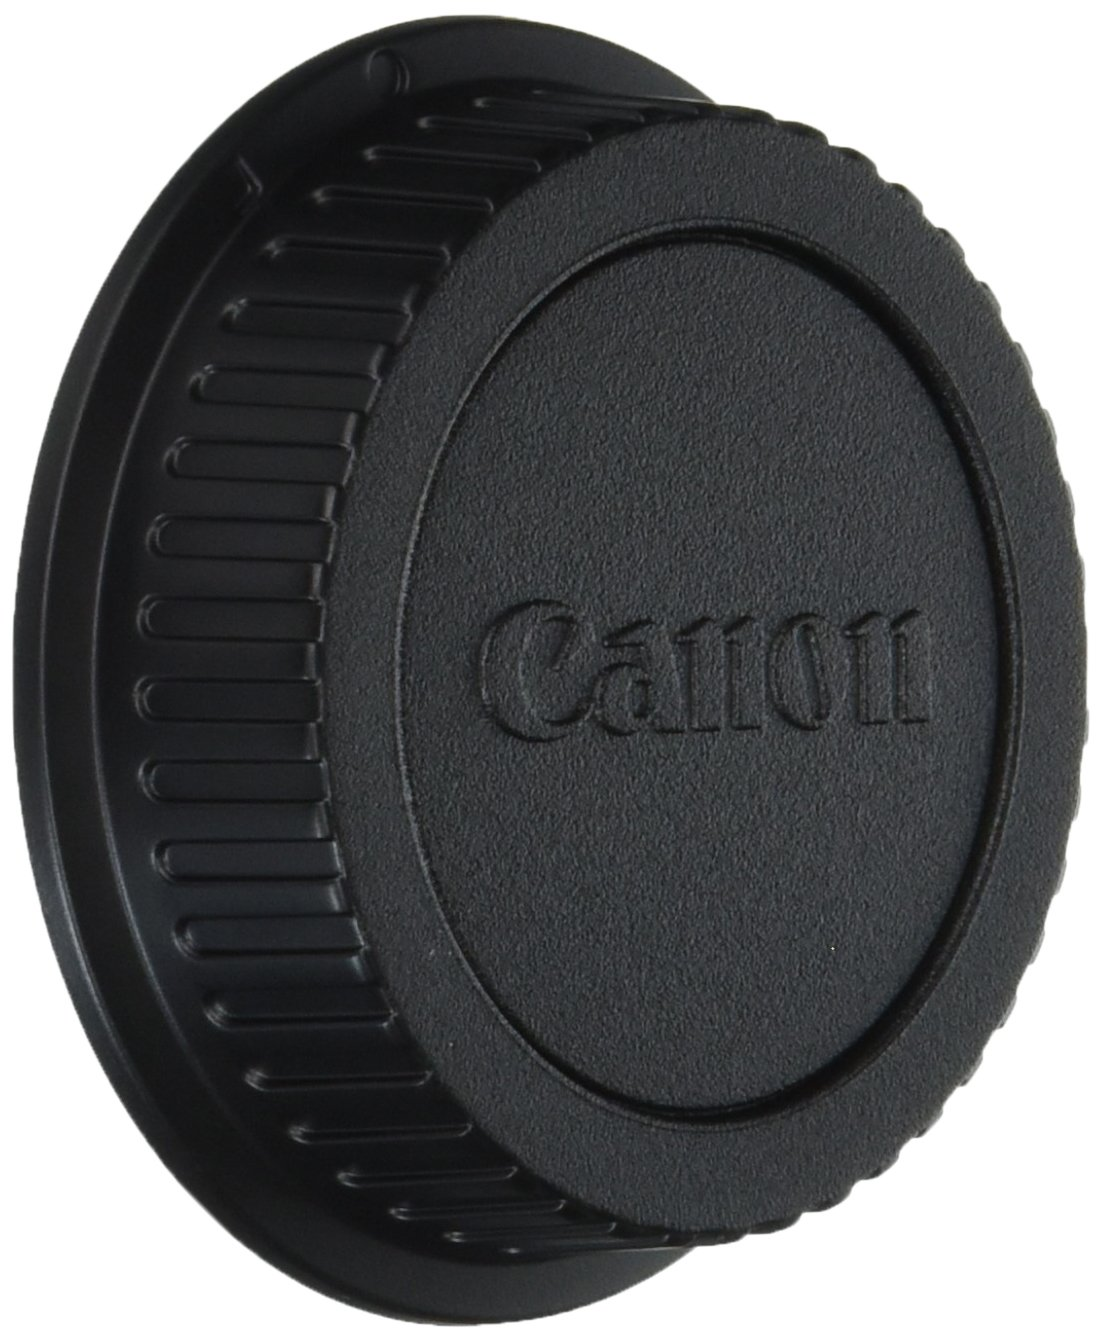 Canon Lens Rear Cap for Canon EF SLR Lenses by Canon